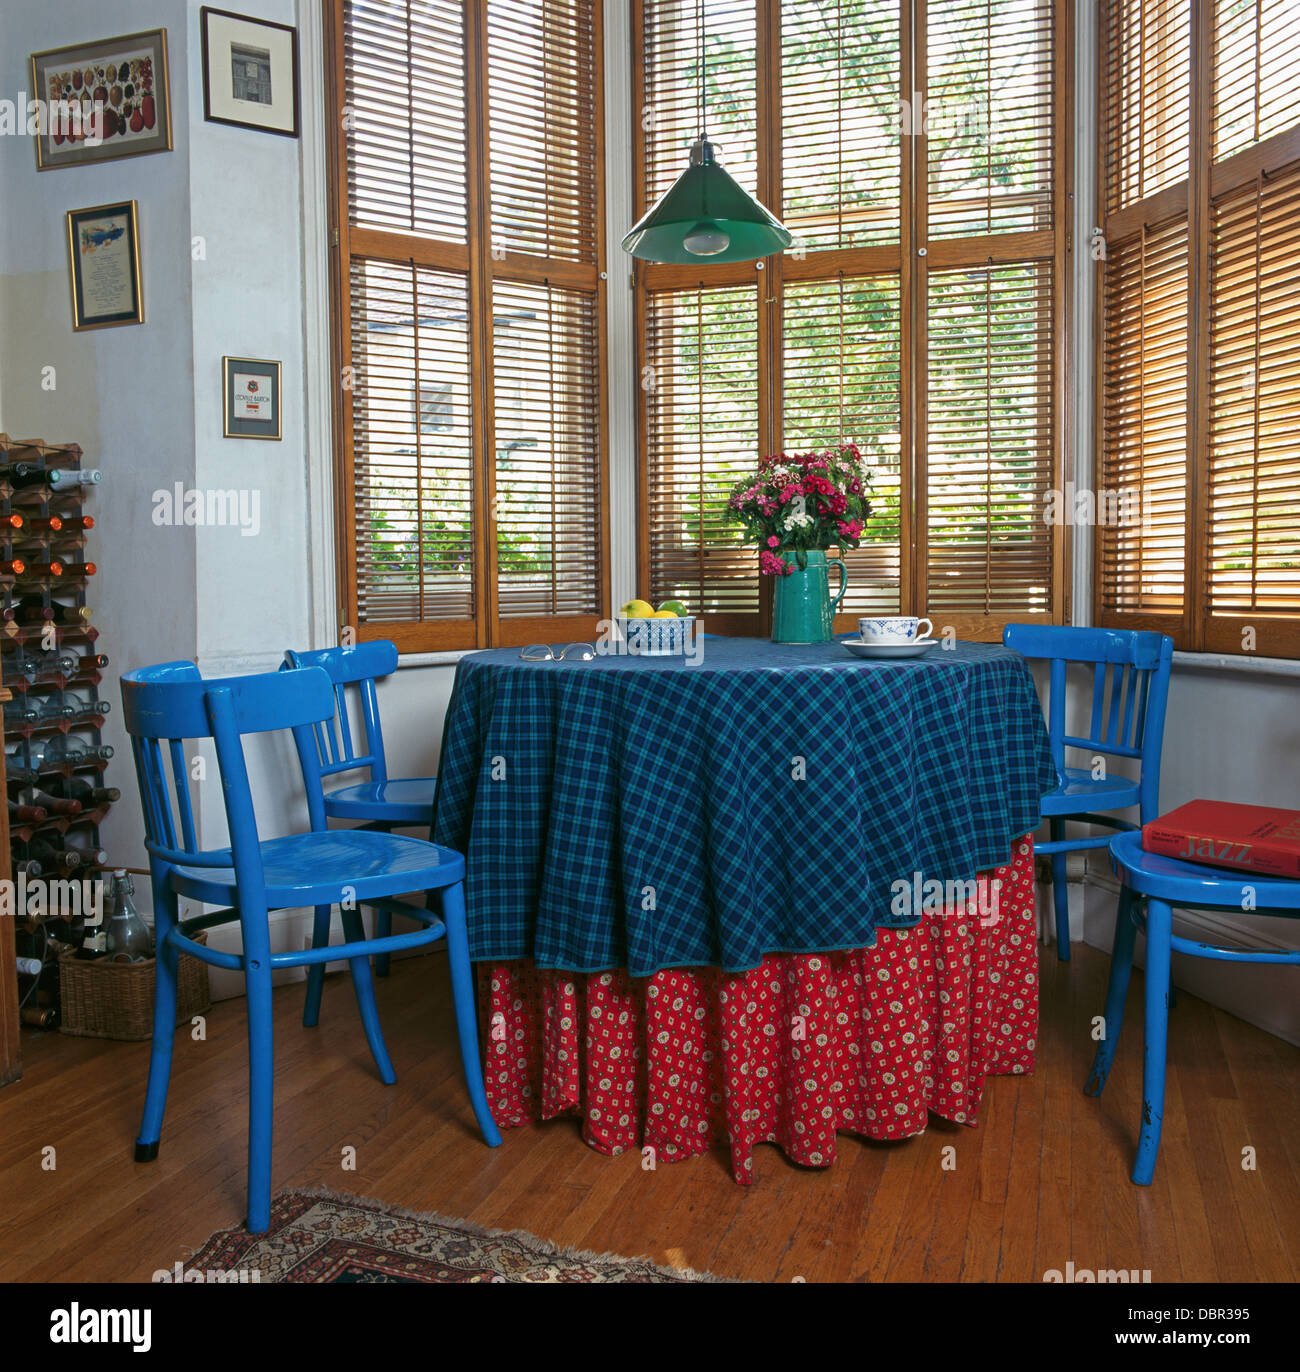 Superbe Bright Blue Painted Chairs At Table With Red And Blue Cloths In Front Of  Dining Room Window With Wooden Venetian Blind